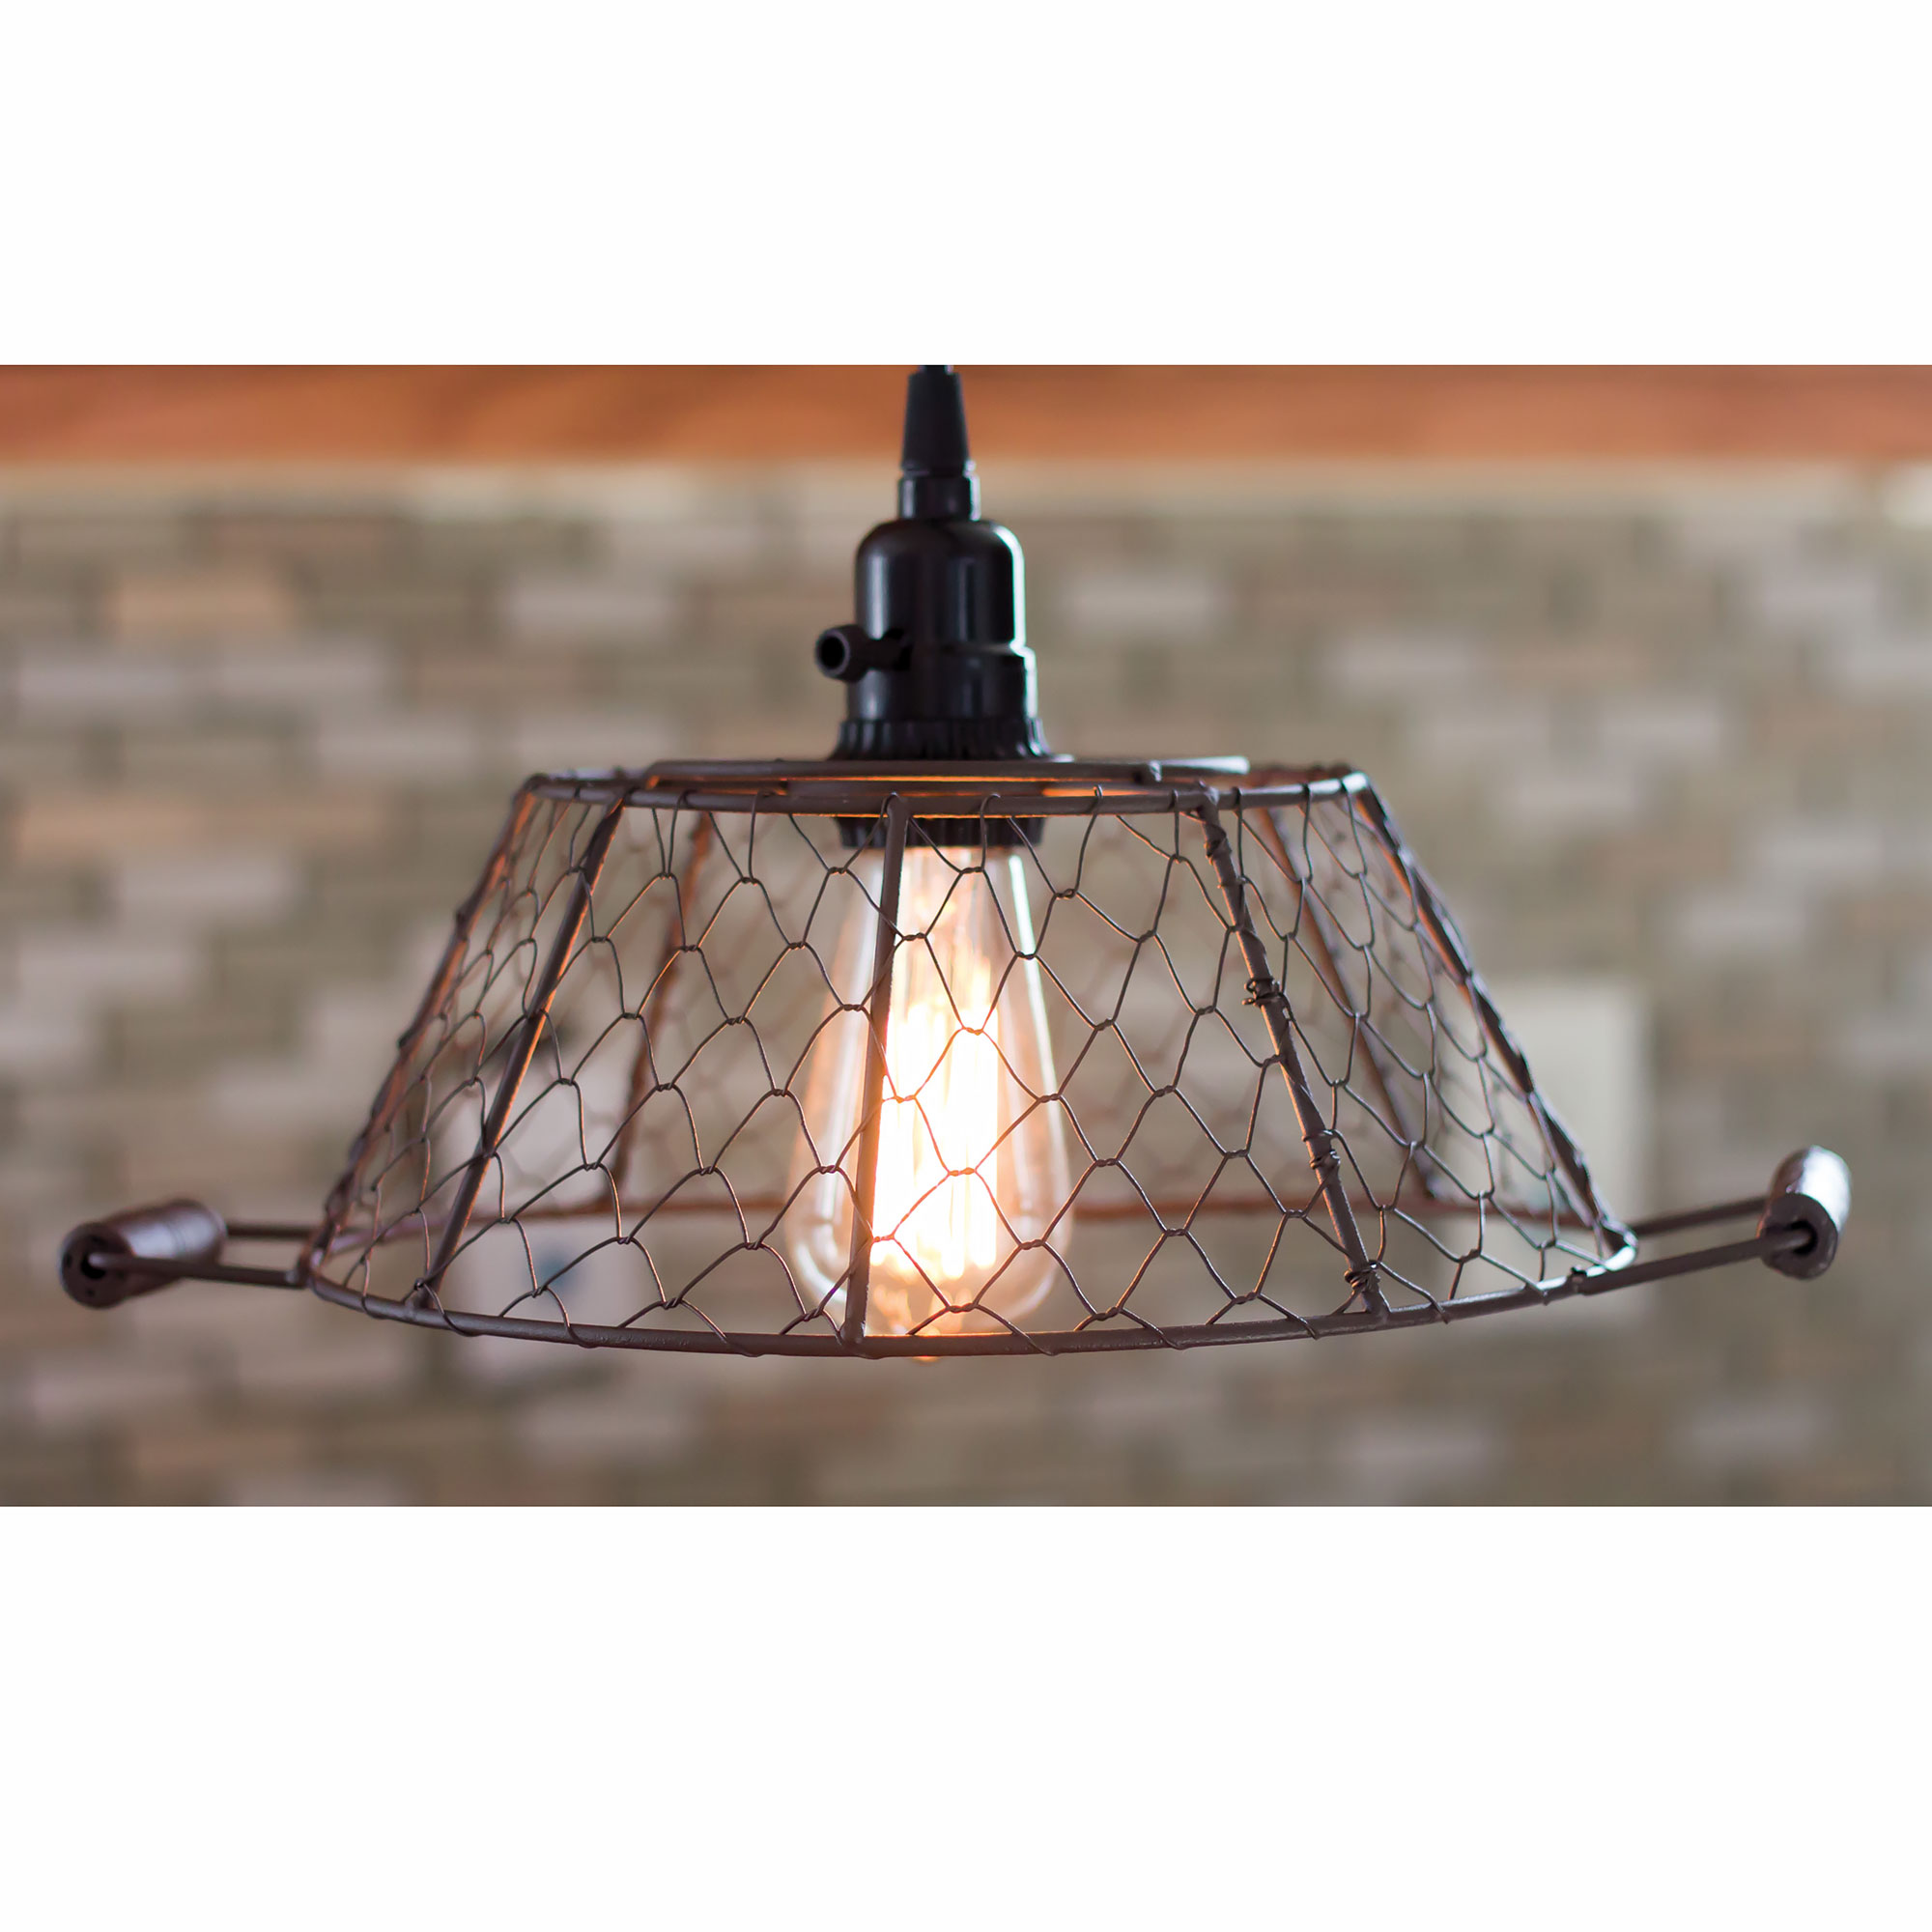 Rusty Mesh Lamp Shade Pendant Light, Choice Of Large Or Small